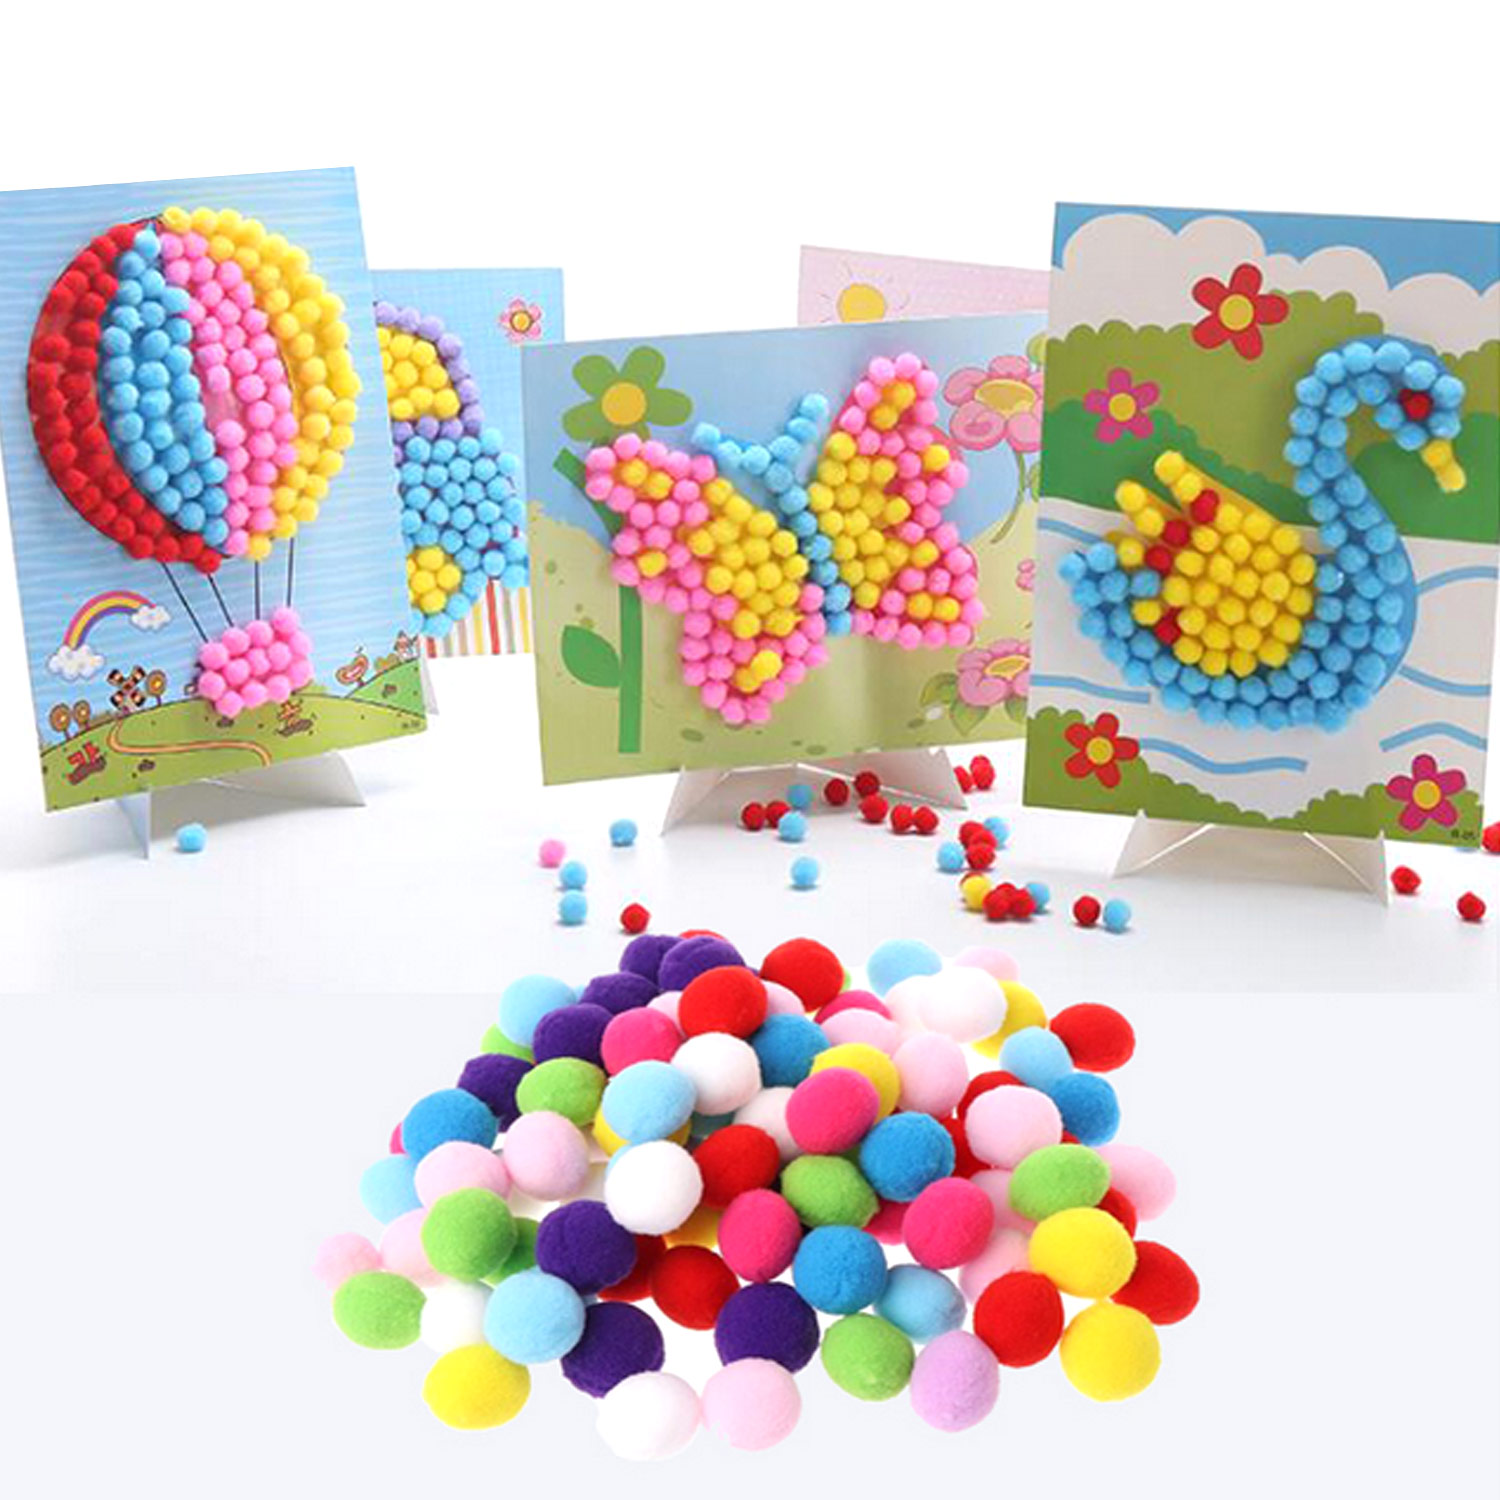 2 Sets Kids DIY Plush Ball Painting Stickers Cute Puzzles Crafts Toys For Birthday Christmas Childrens Day Gift Random Styles